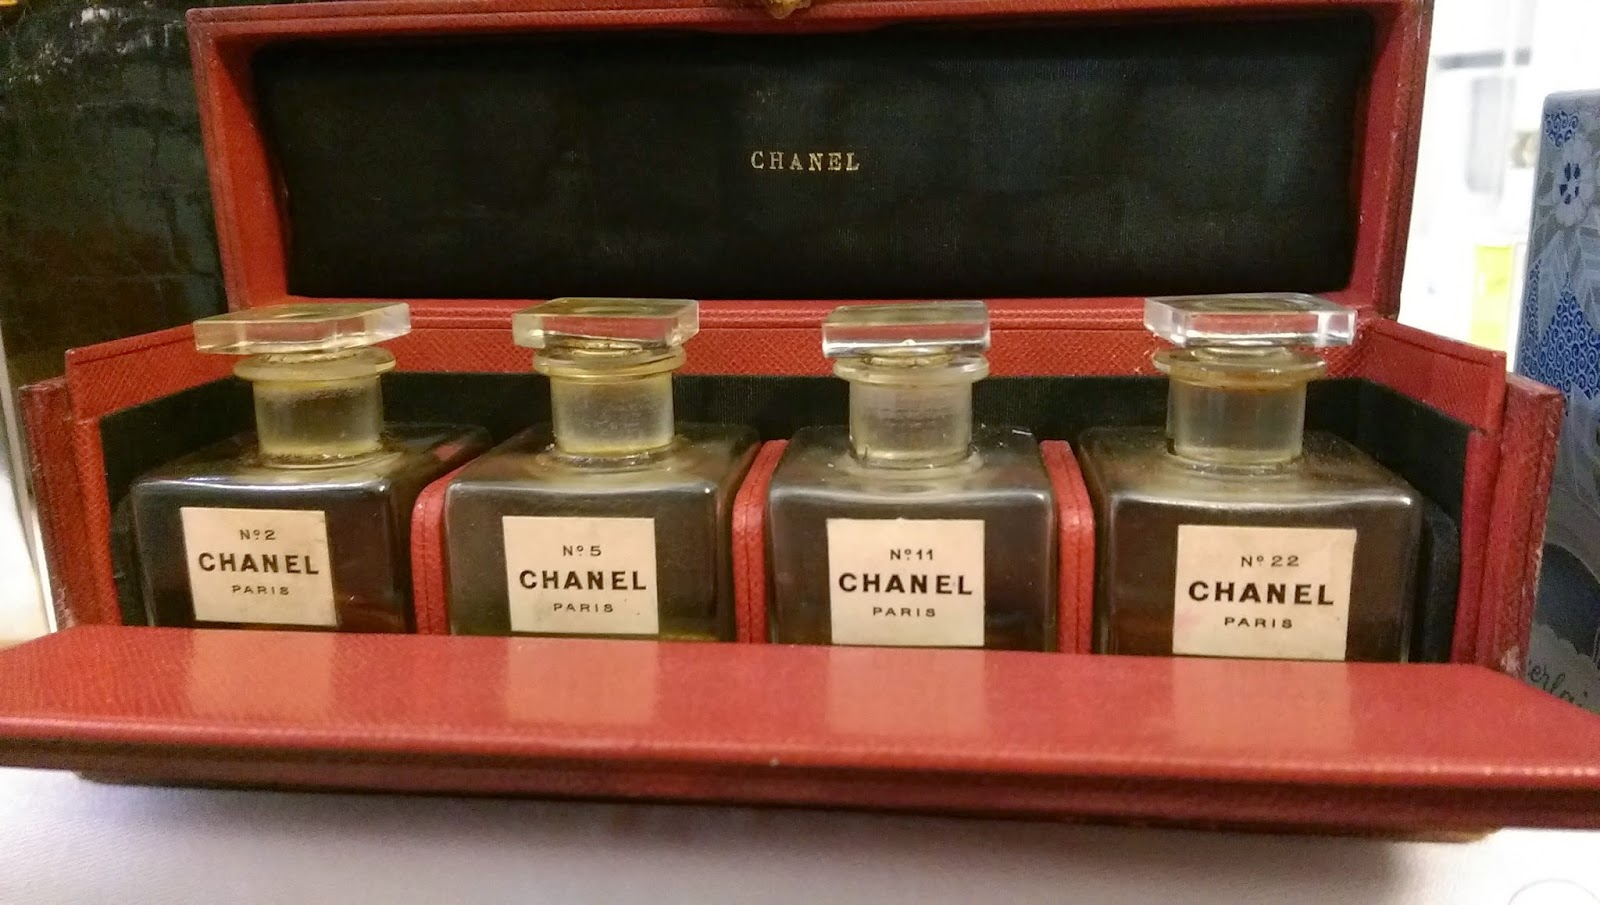 The original samples of Chanel perfumes